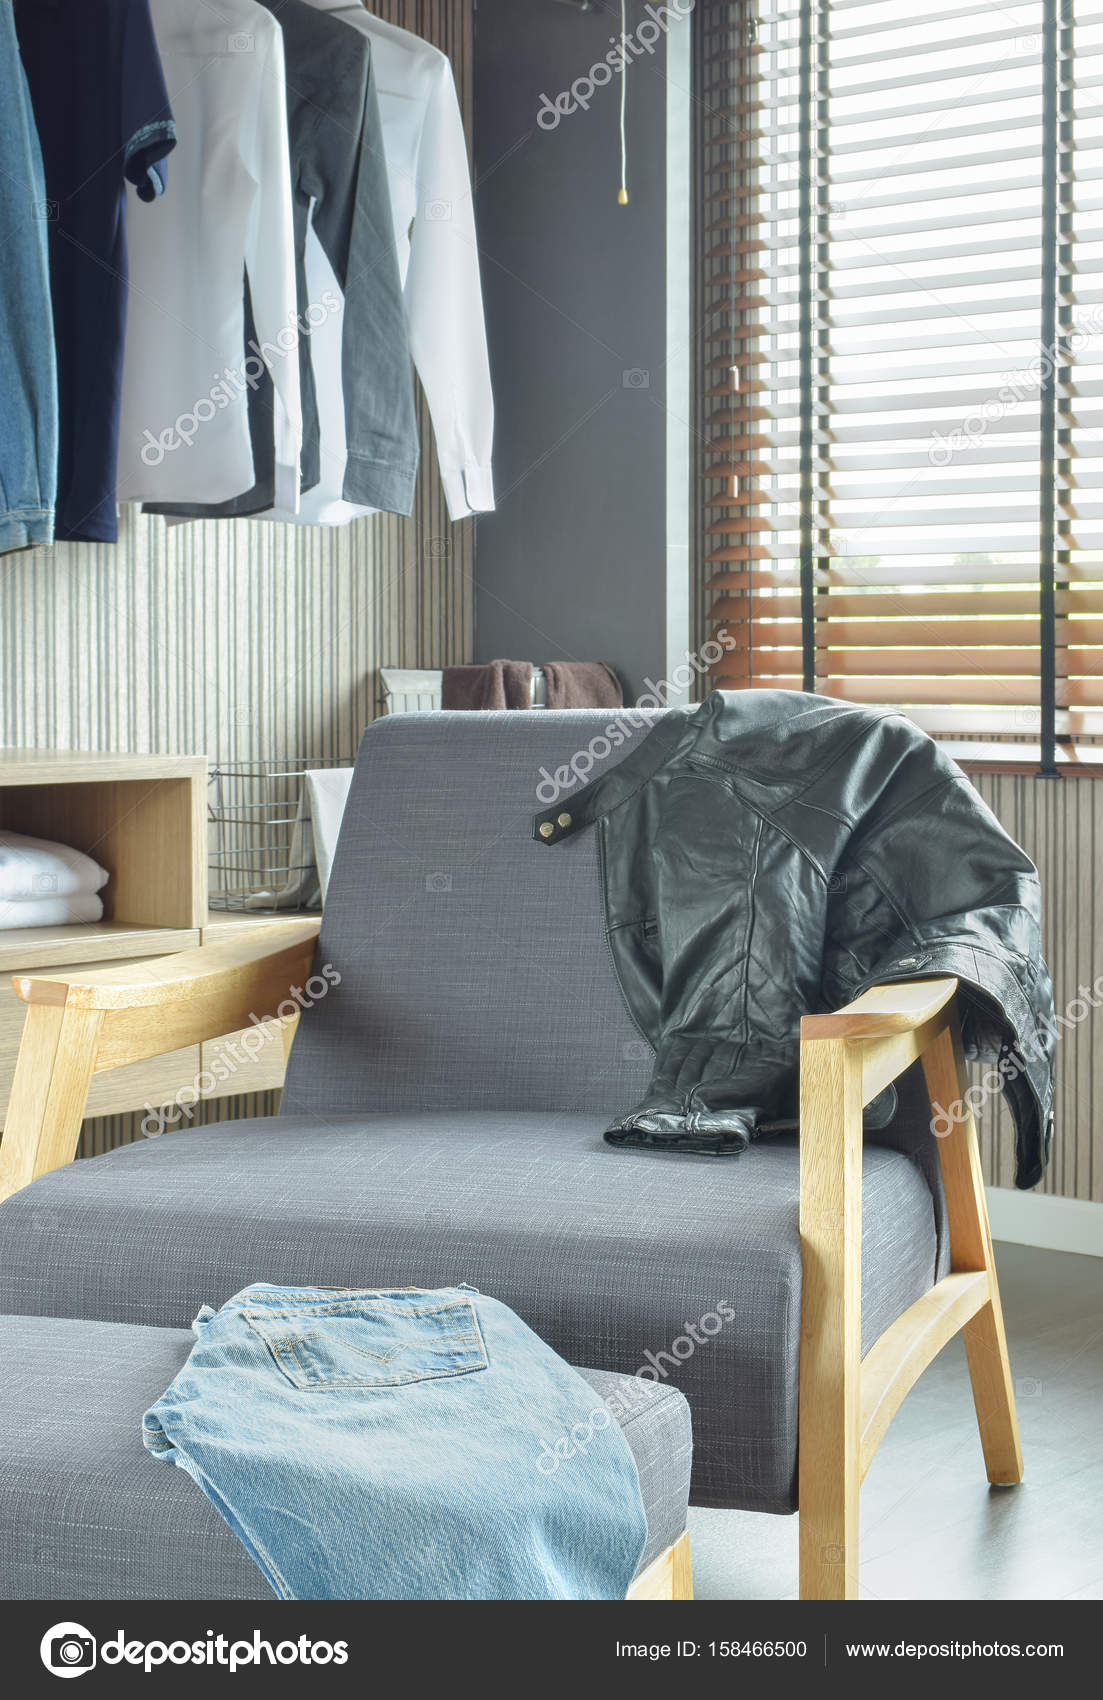 Mooie Lounge Stoel.Nice Lounge Chair In Walk In Closet Stock Photo